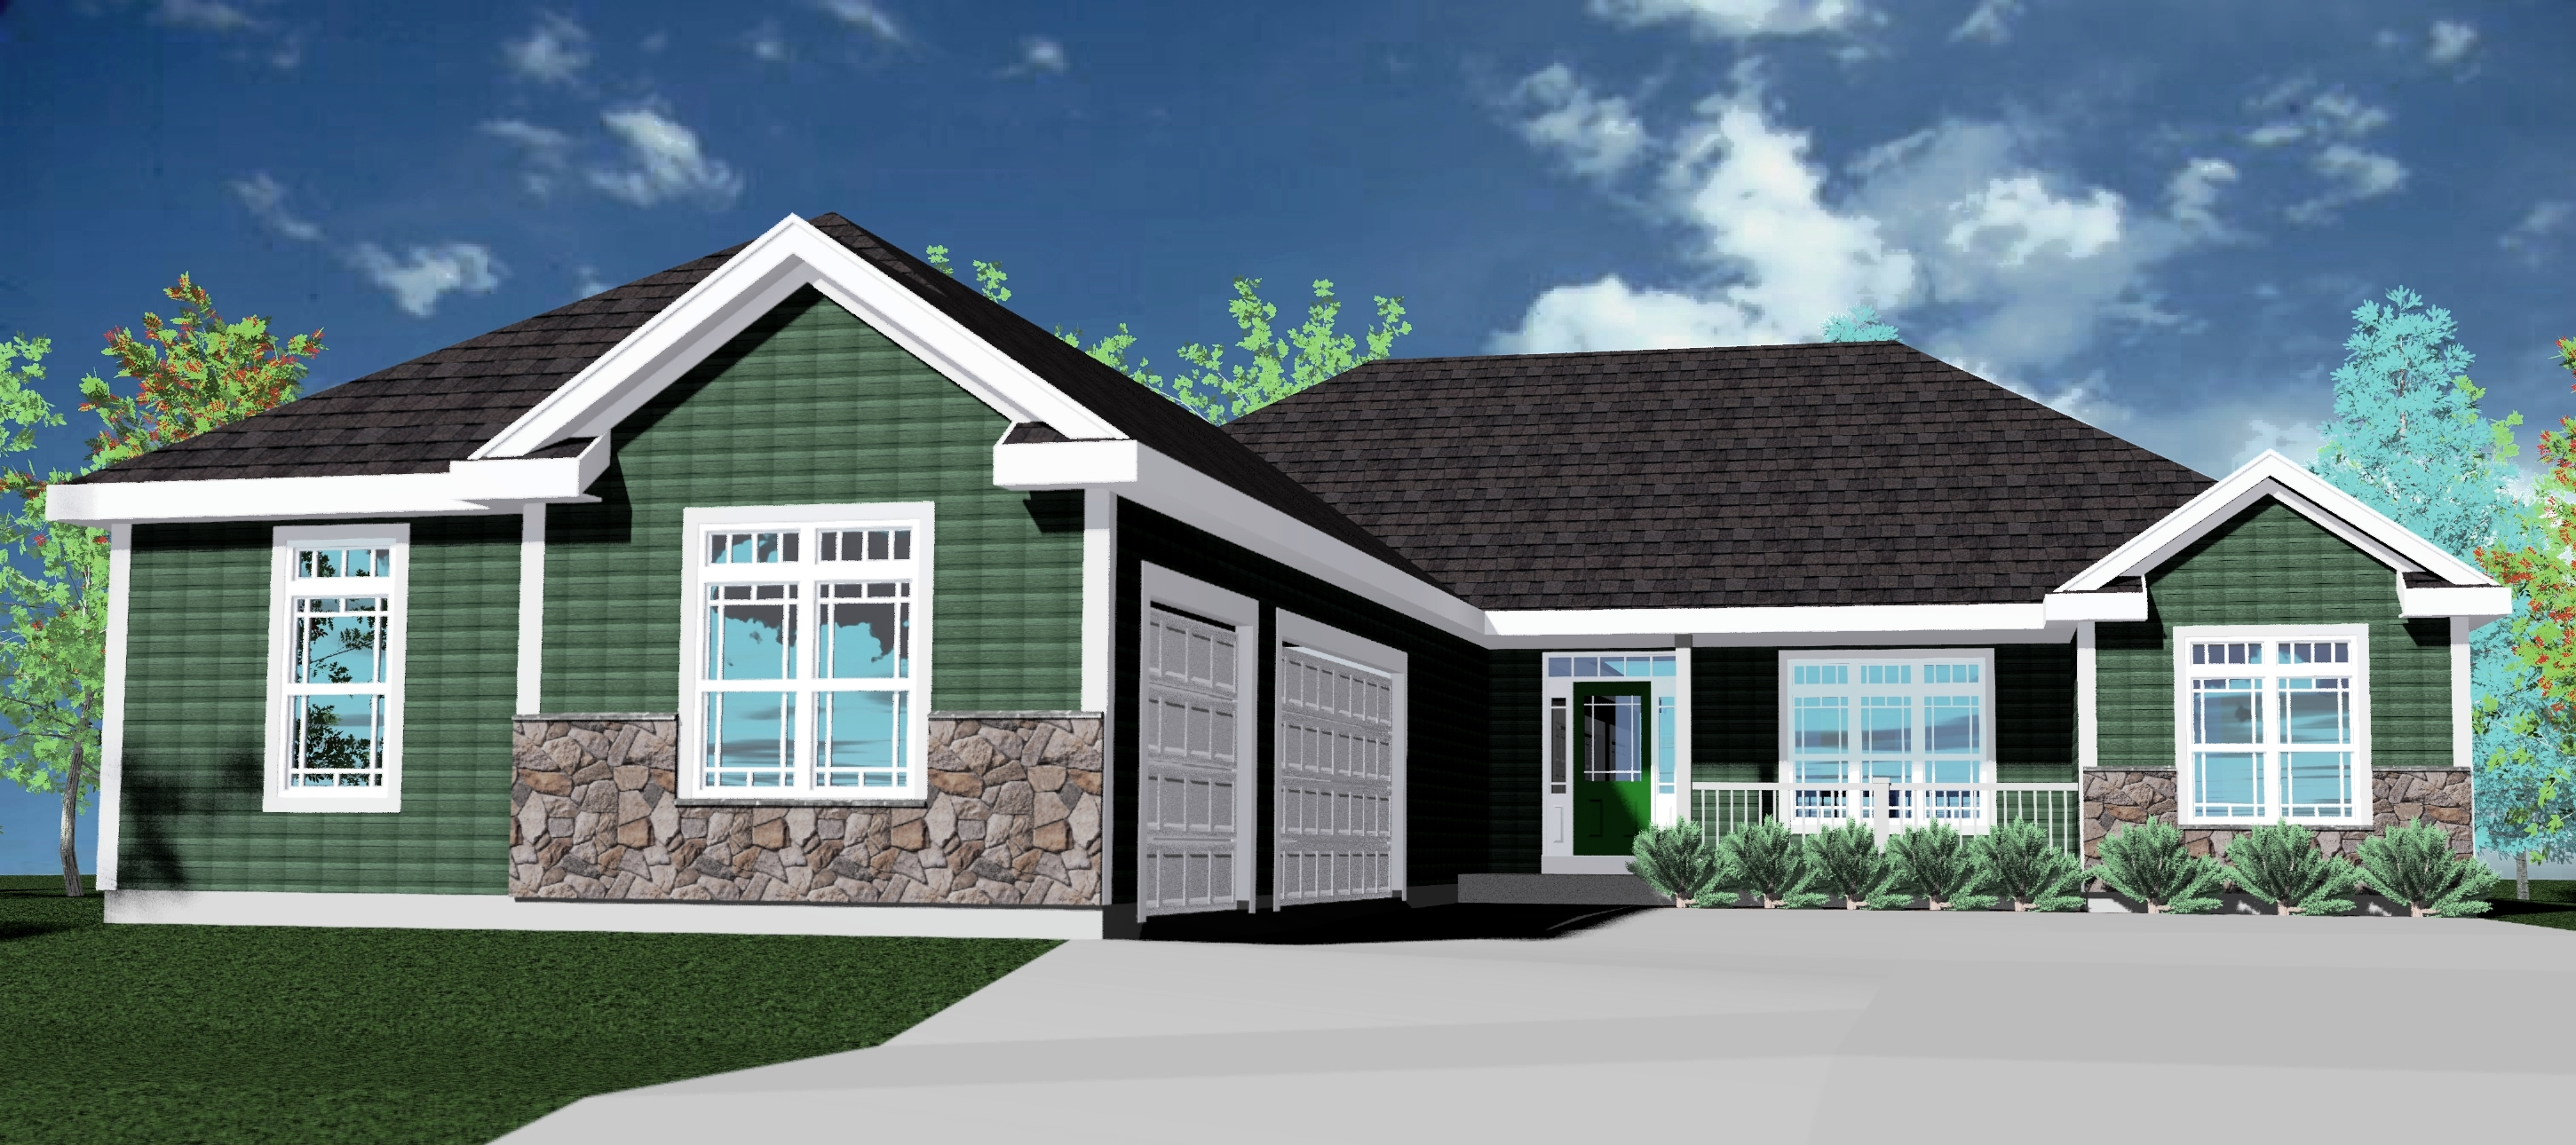 Bluestem Trail Prairiefield Rendering